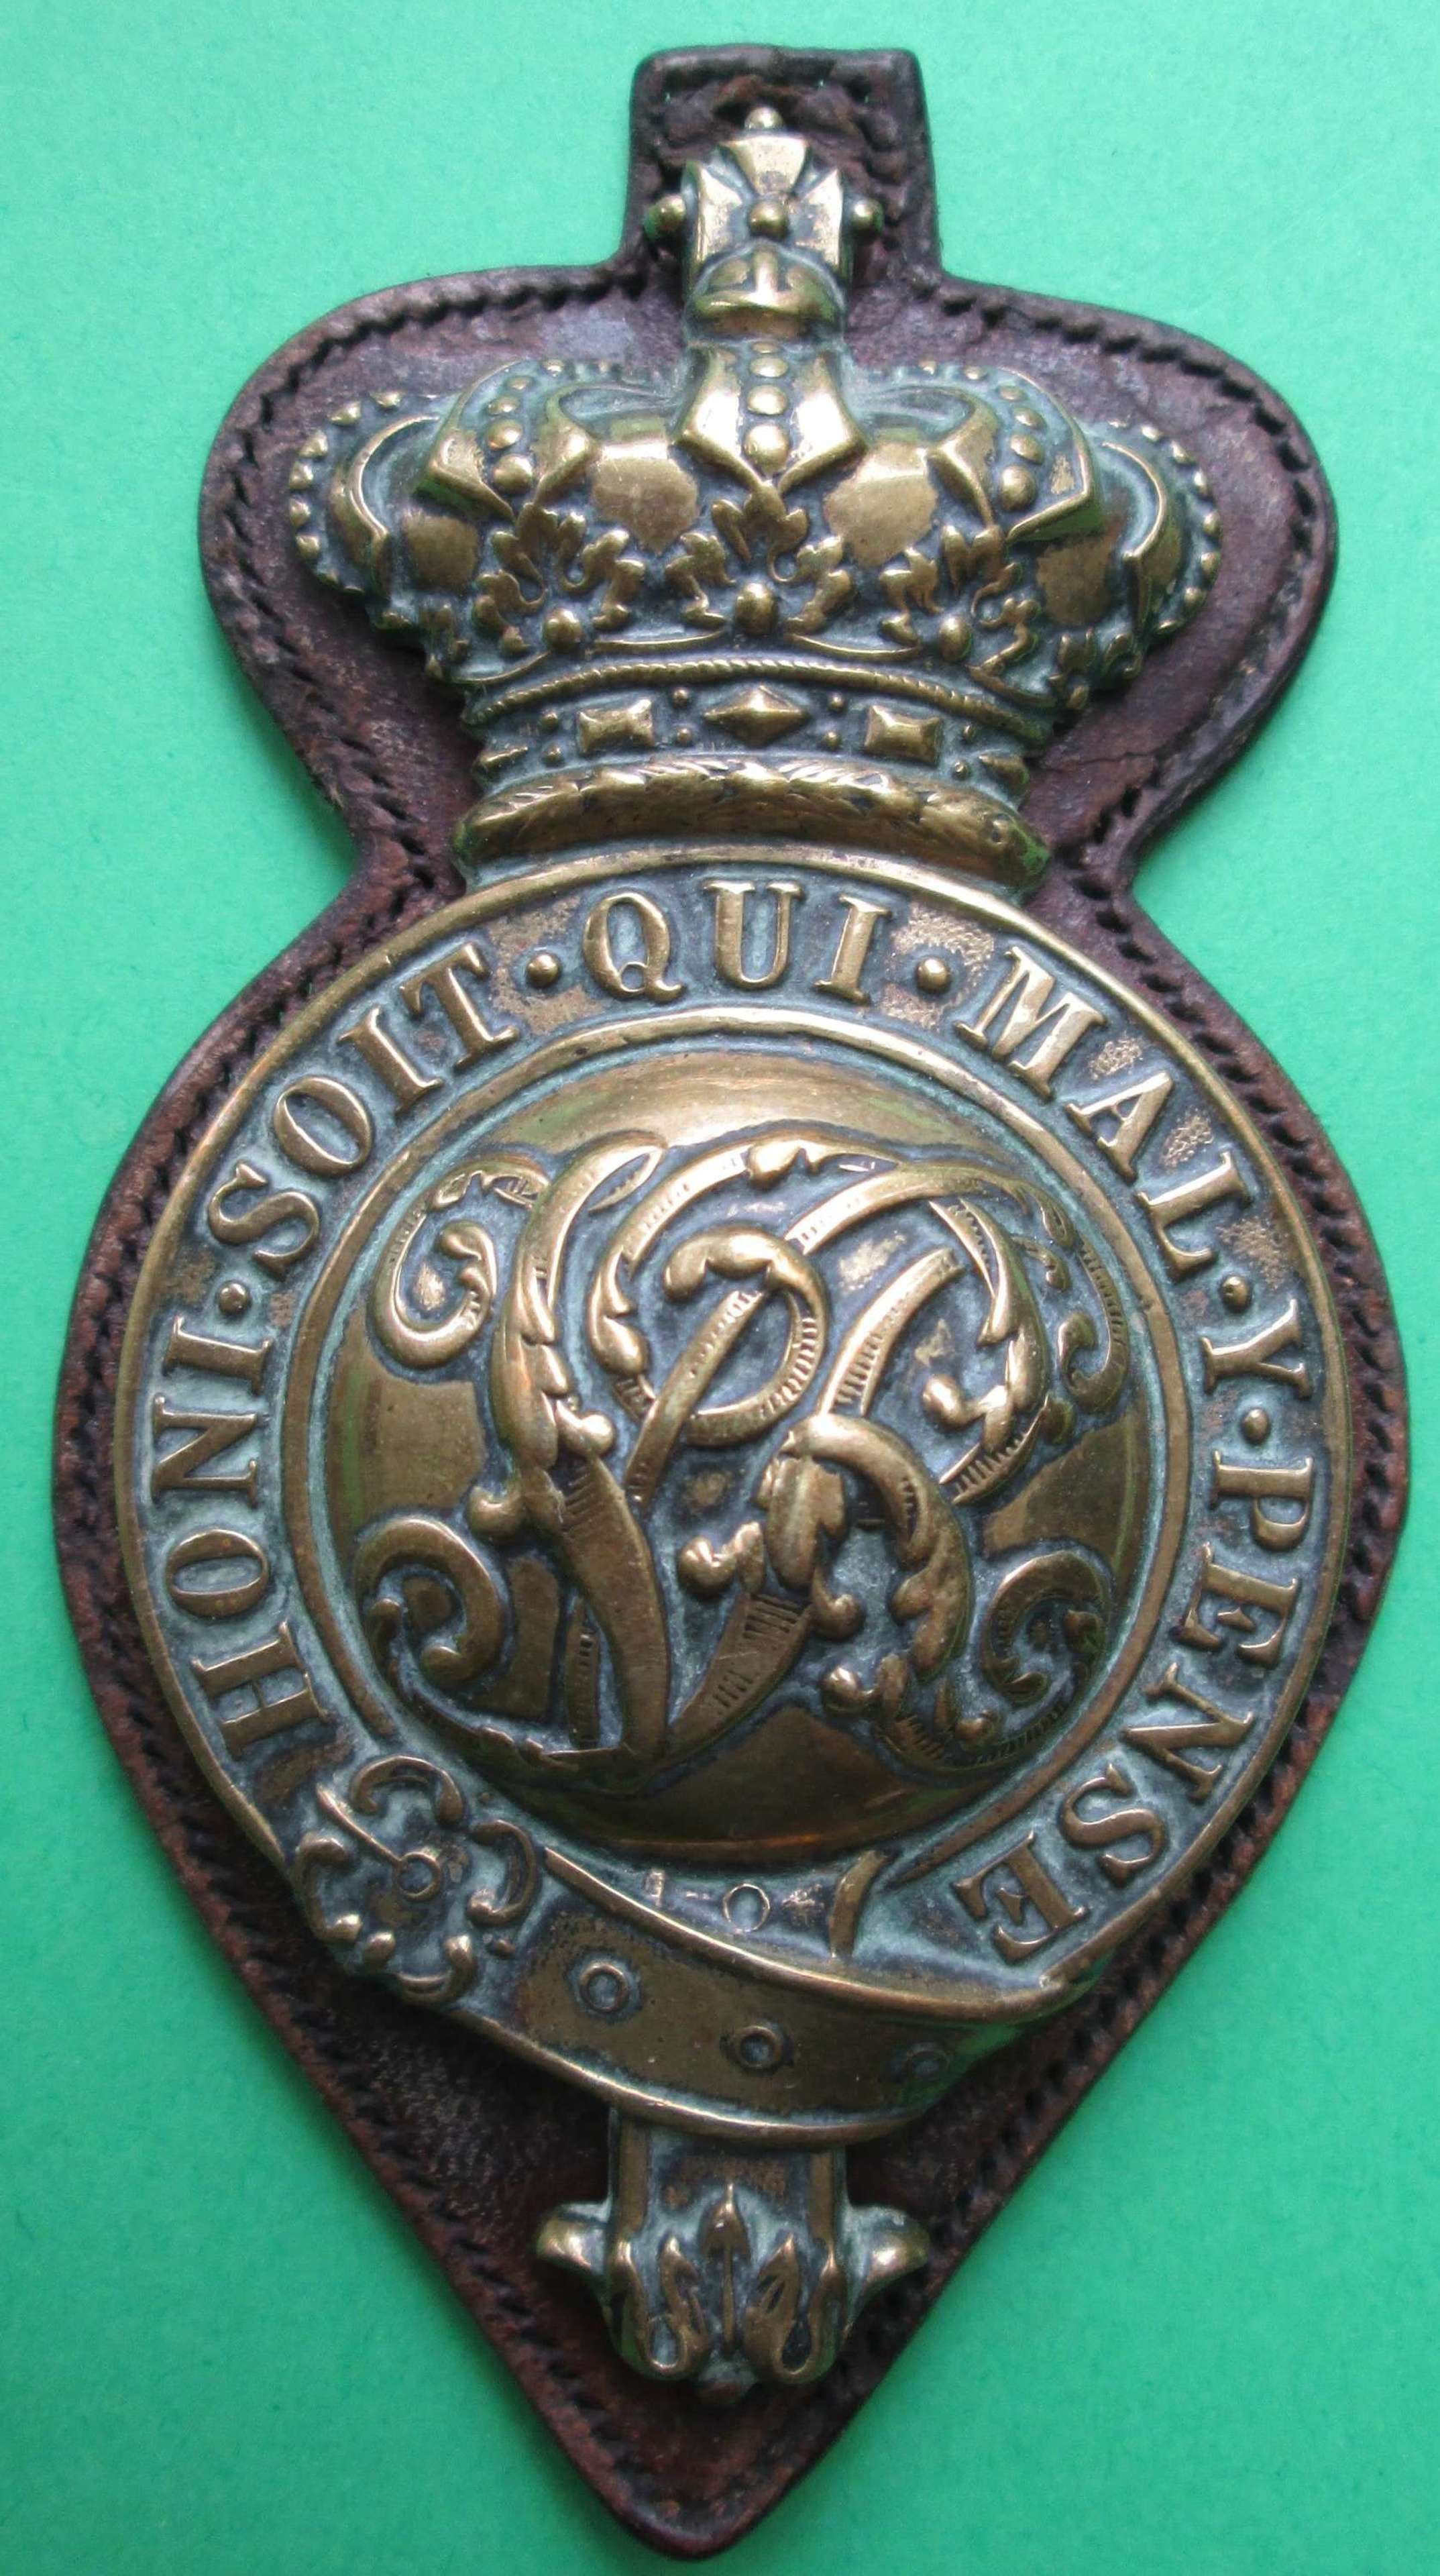 A VICTORIAN MOUNTED INFANTRY OFFICER'S HORSE MARTINGALE